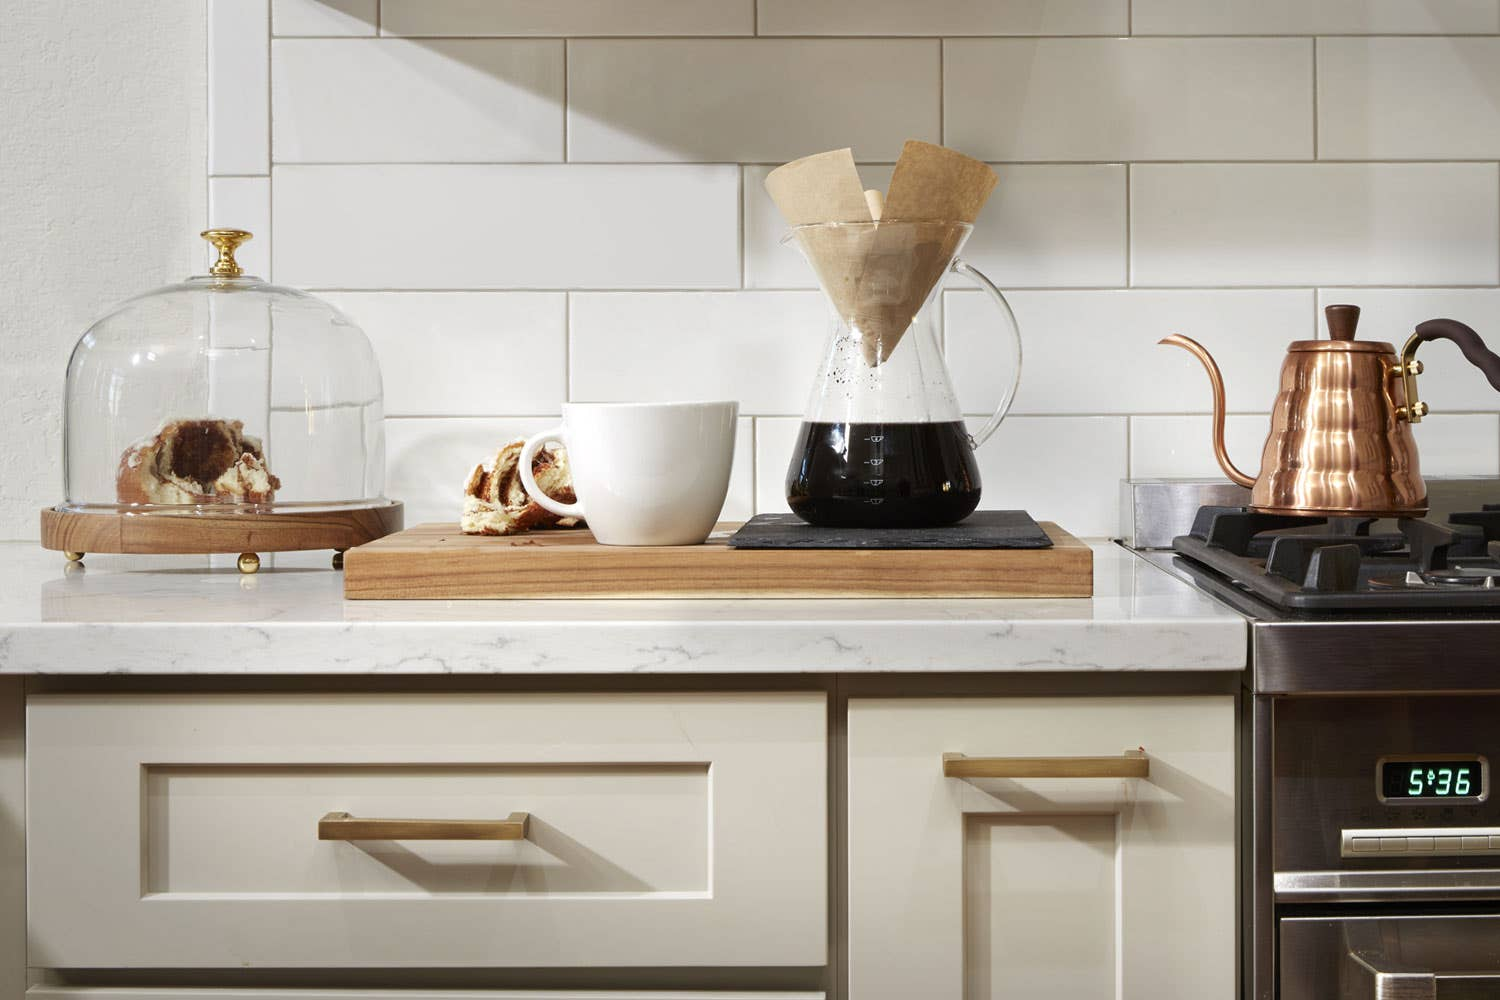 dayton white kitchen cabinets with pastries and pour over coffee brewing on countertop